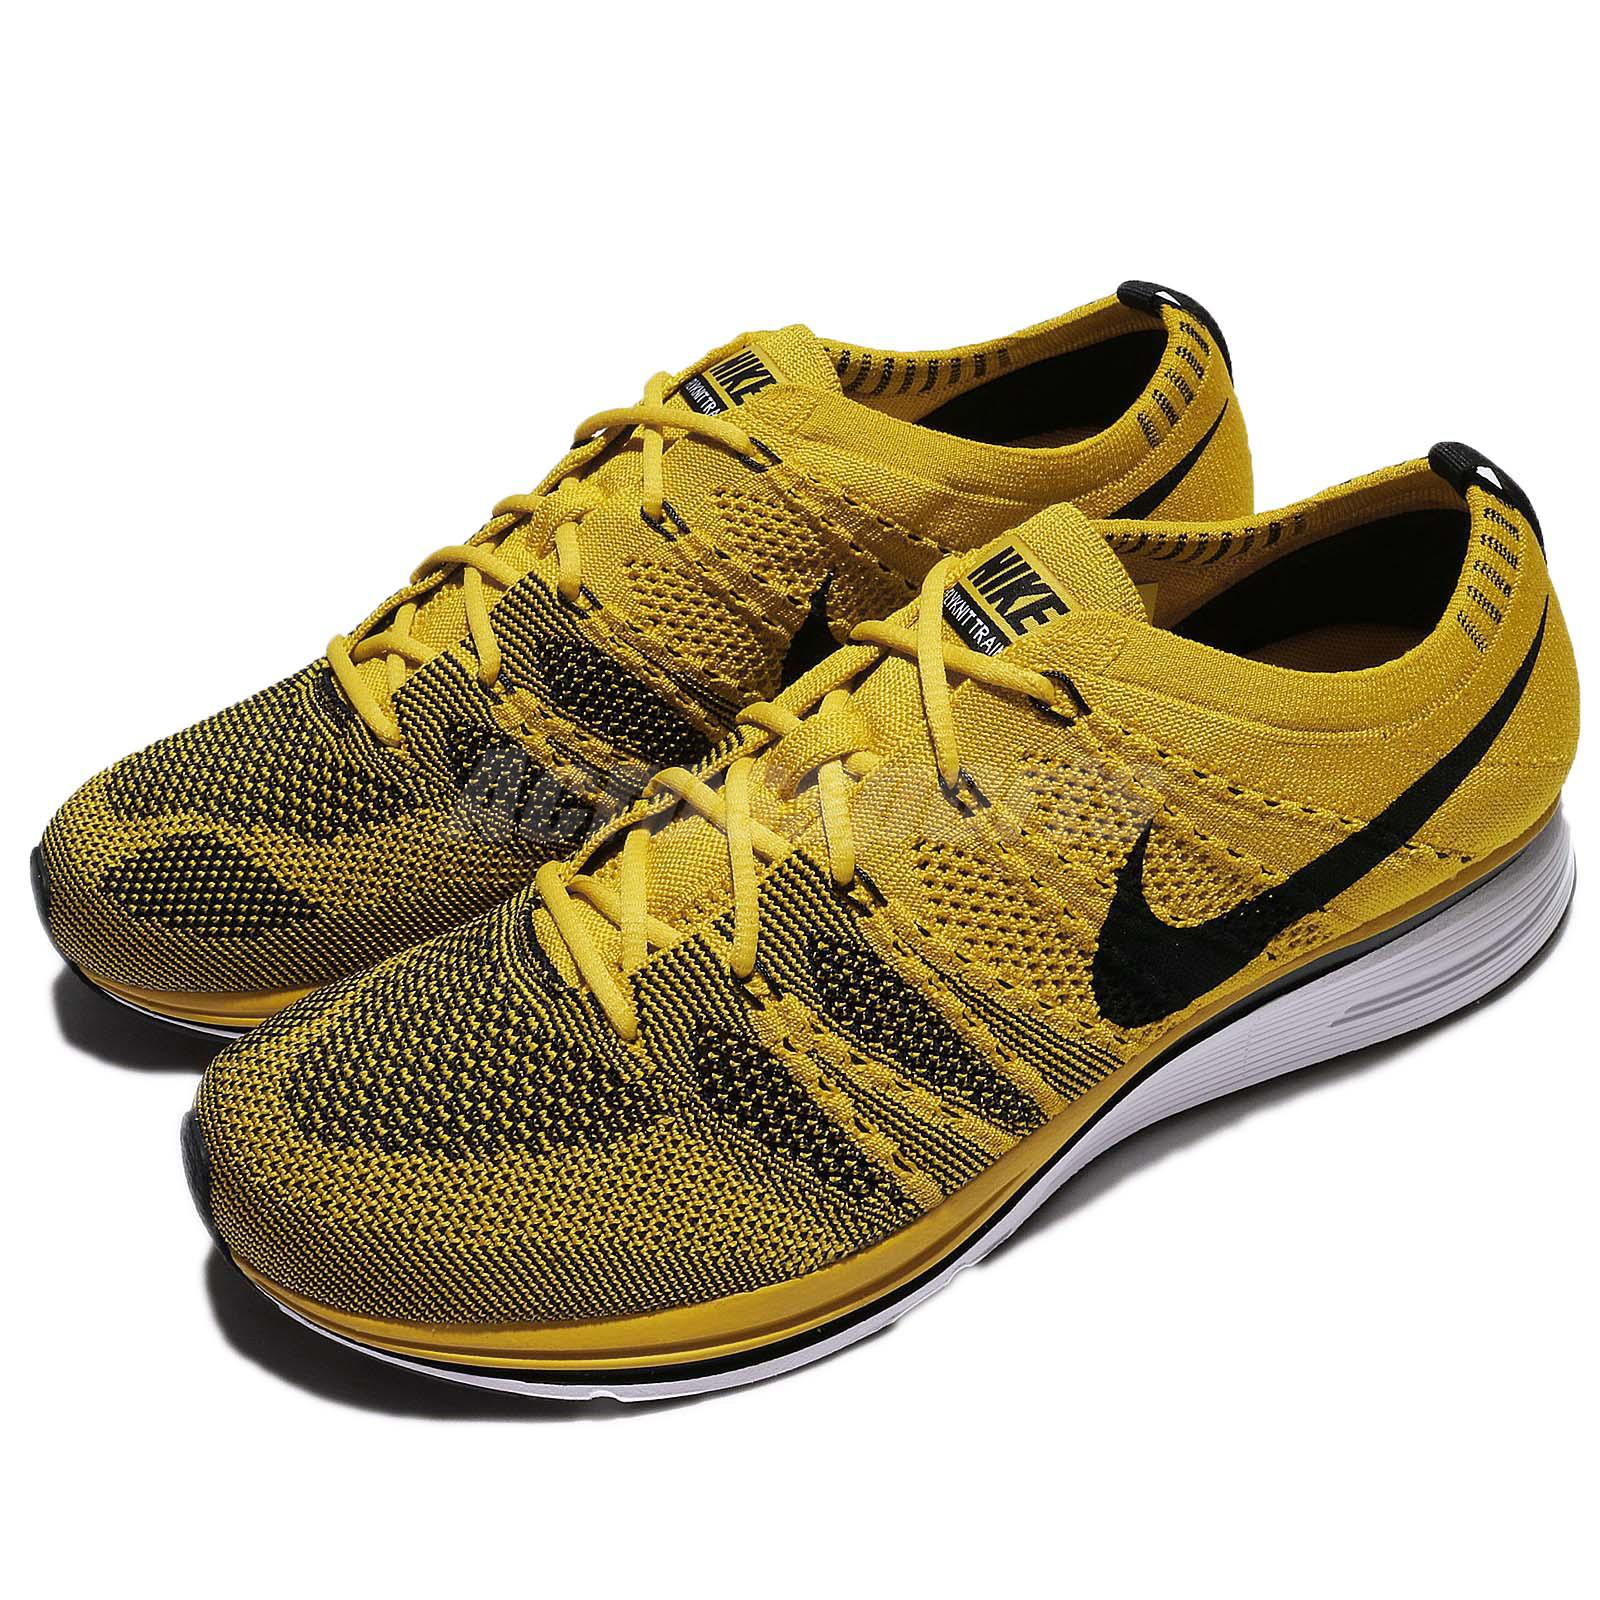 8d073893063d Details about Nike Flyknit Trainer Bright Citron Black Men Running Shoes  Sneakers AH8396-700